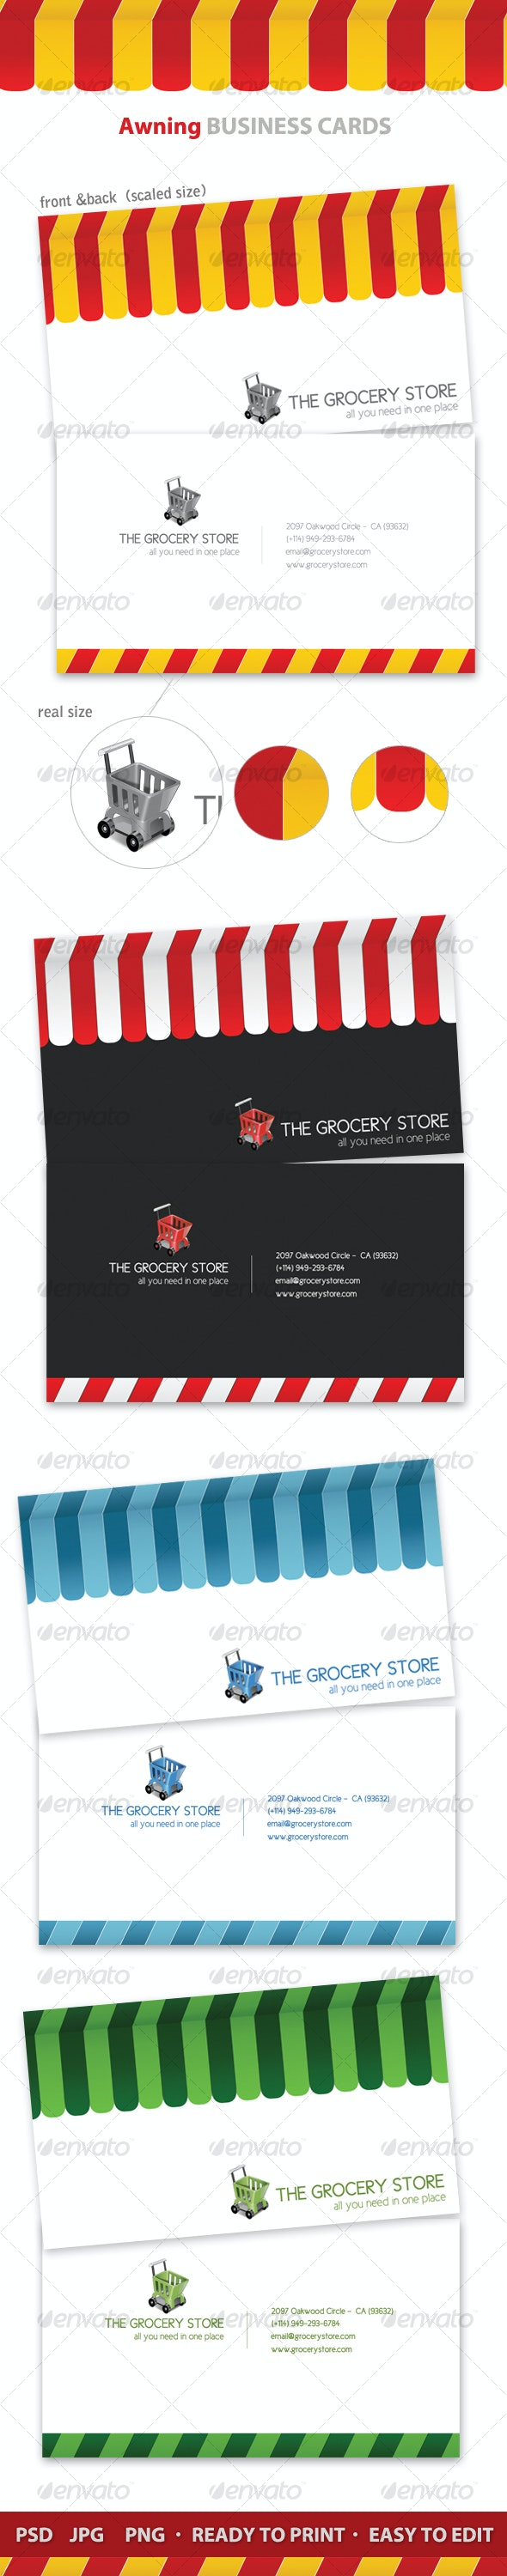 Awning Business Cards x 4 - Industry Specific Business Cards